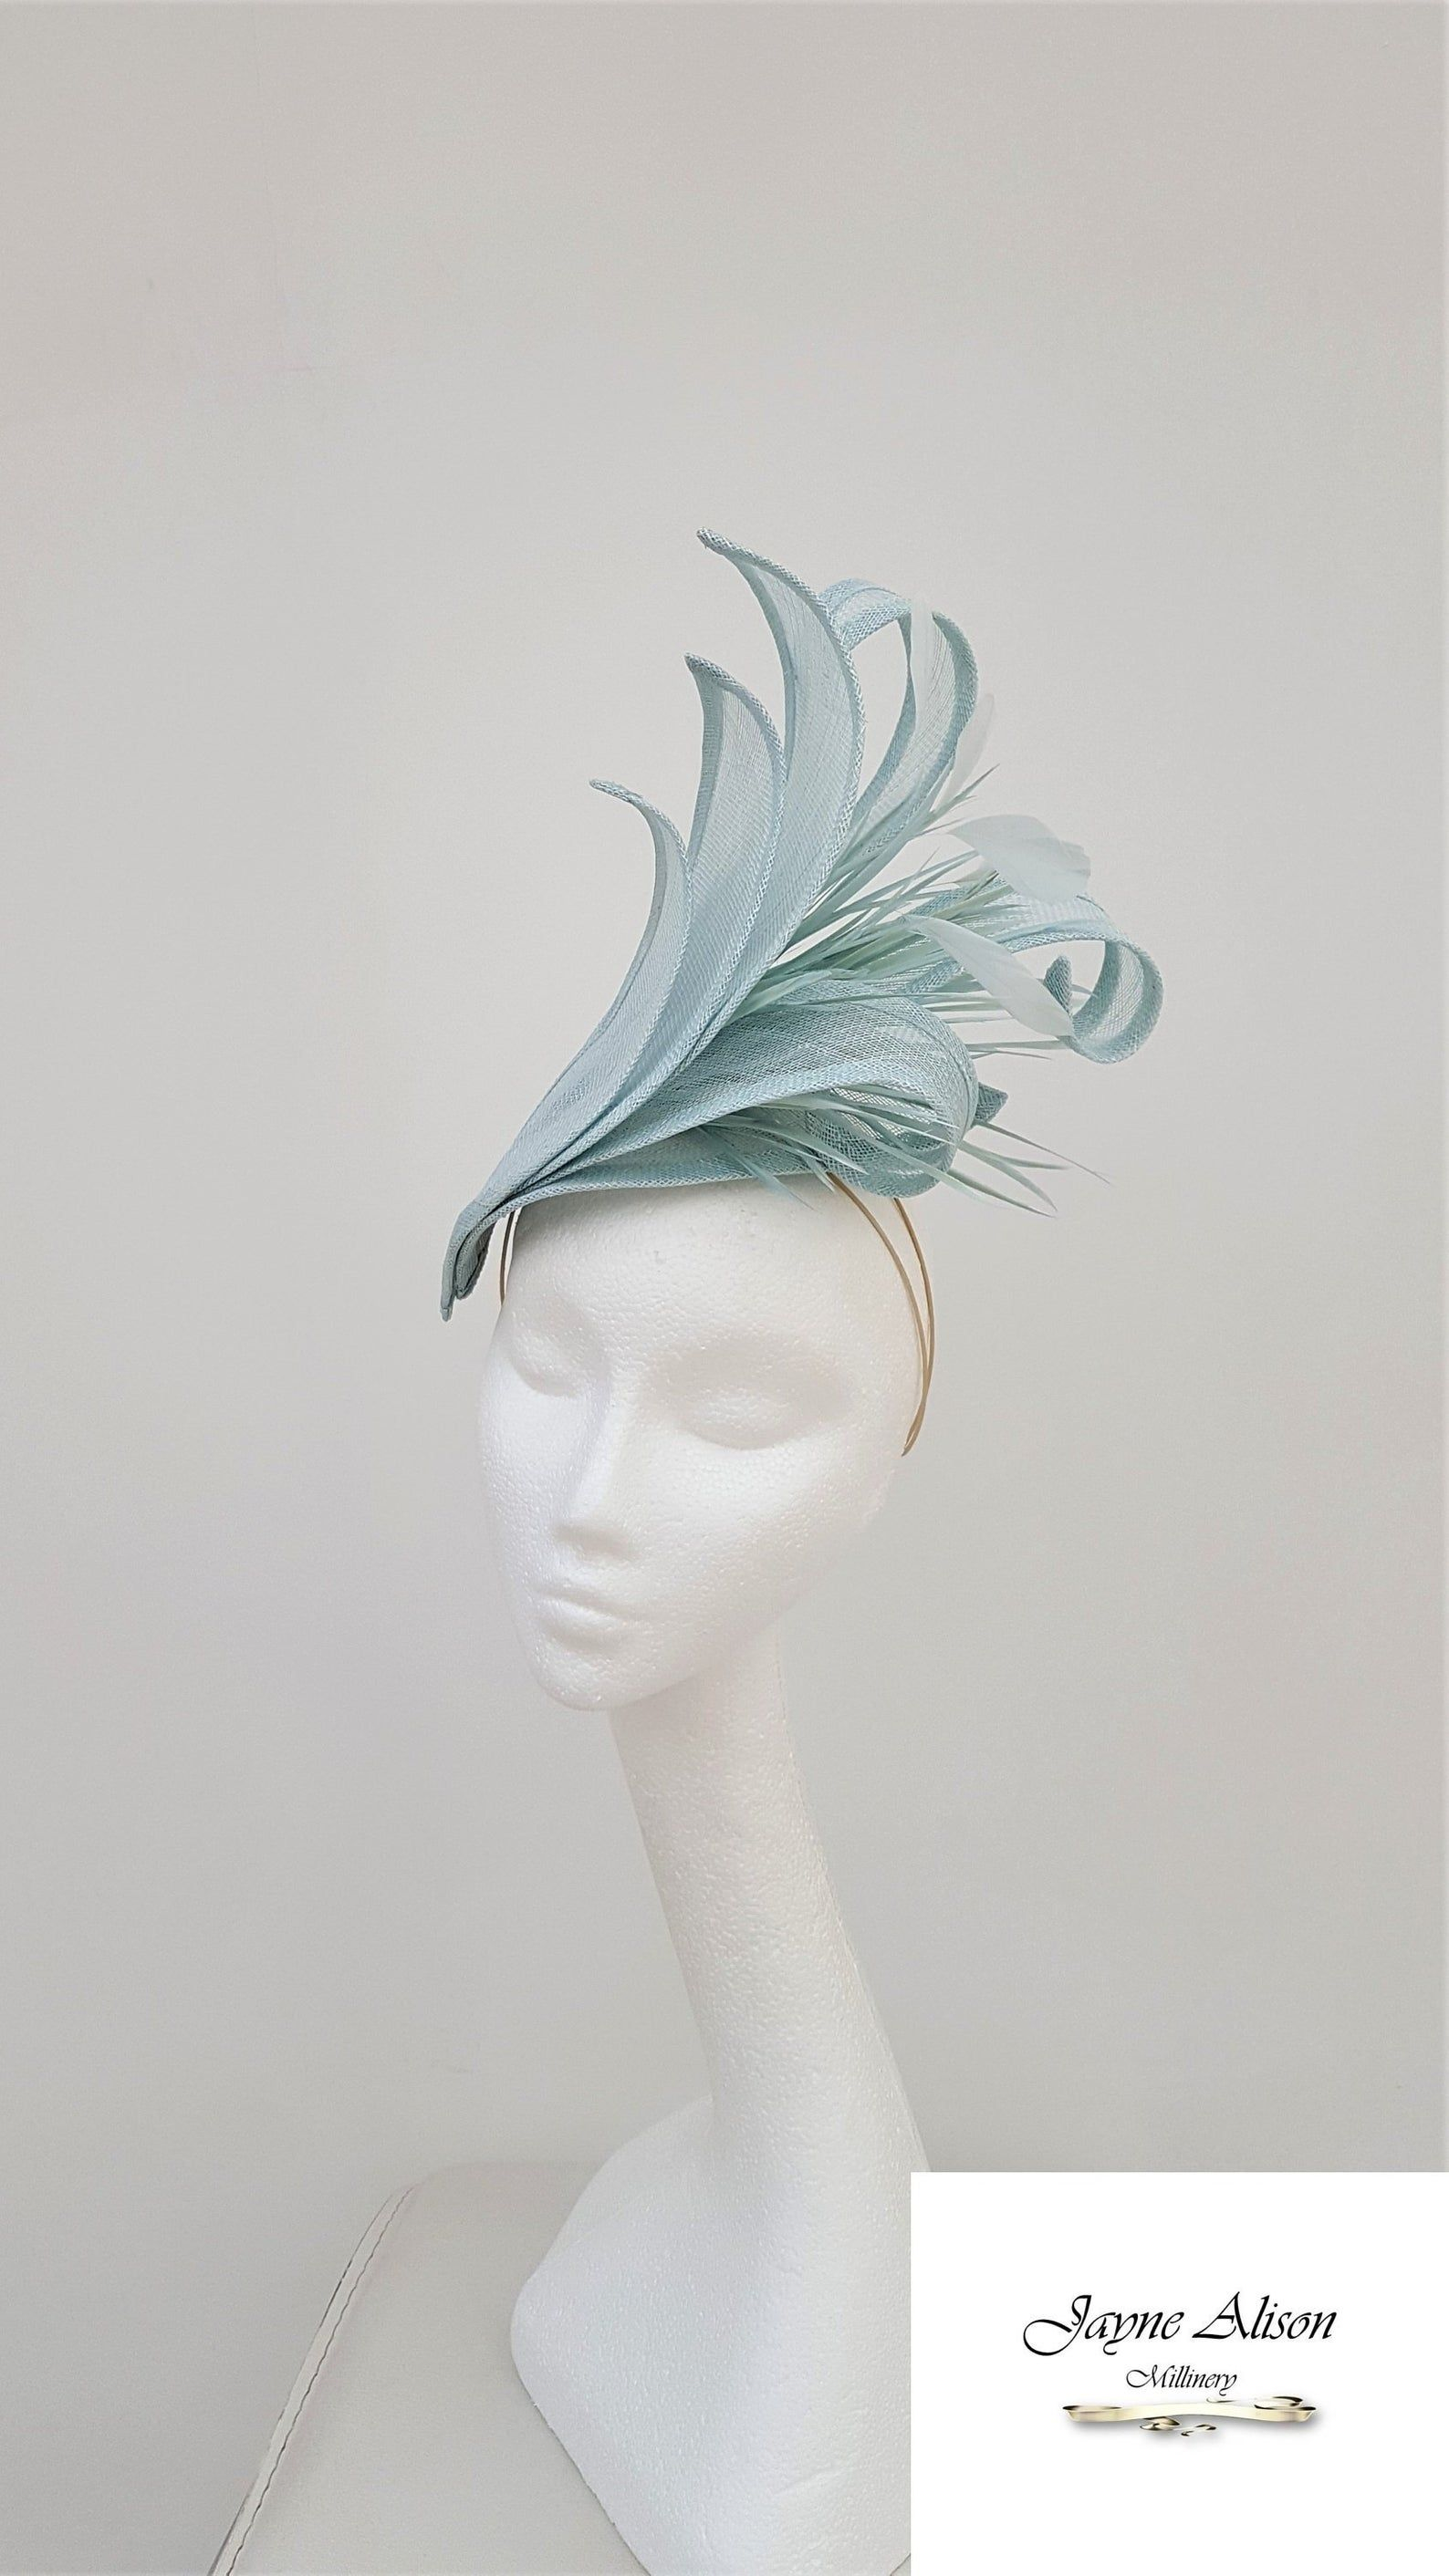 Ocean Blue, Pale Aqua Hatinator, Wedding Fascinator, Mother of the Bride Hat, Royal Ascot Hatinator, Ladies day fascinator, Kentucky Derby